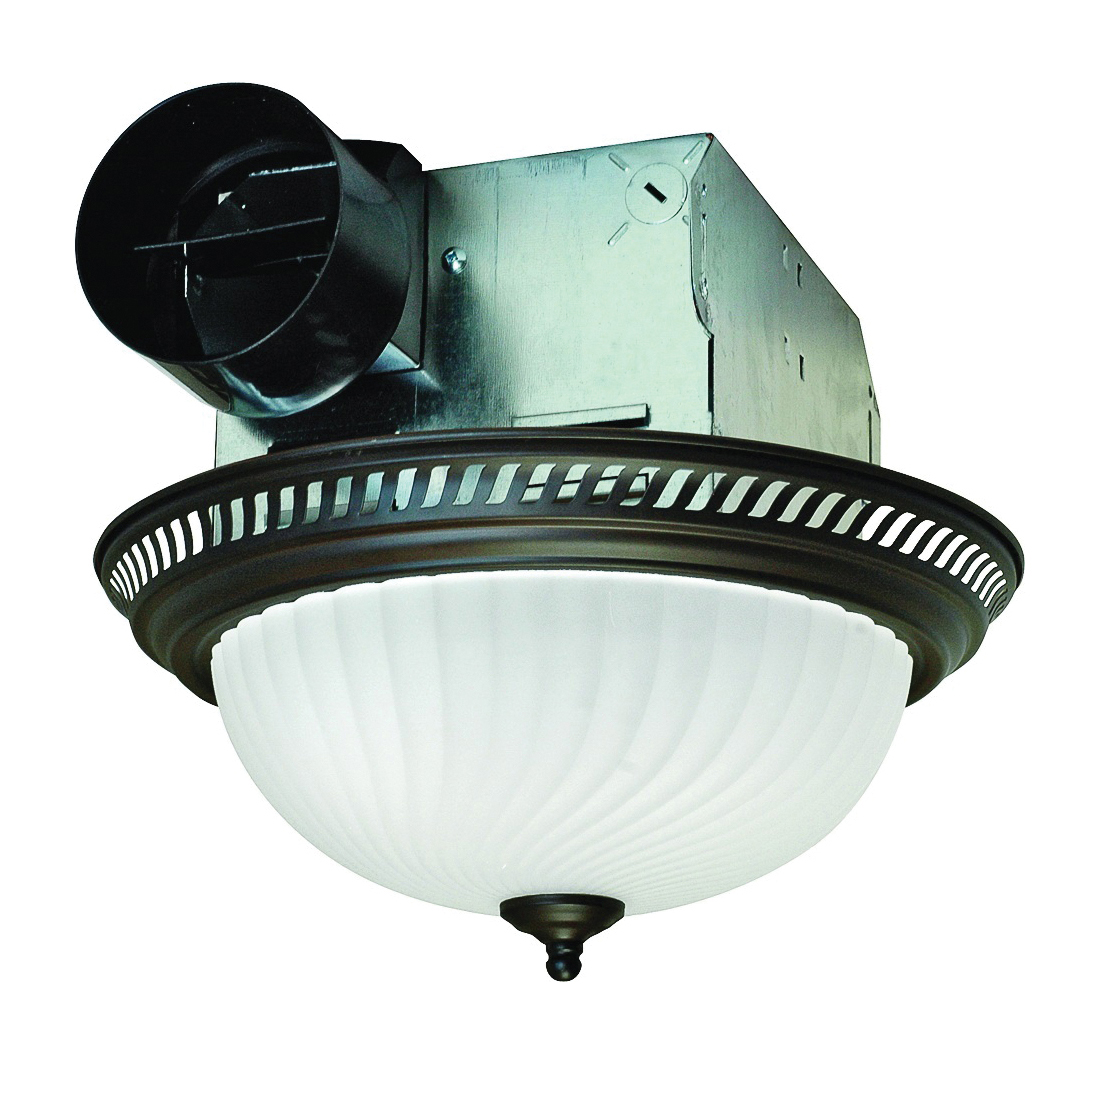 Picture of Air King DRLC701 Exhaust Fan, 1.6 A, 120 V, 70 cfm Air, 4 Sones, CFL, Incandescent Lamp, 4 in Duct